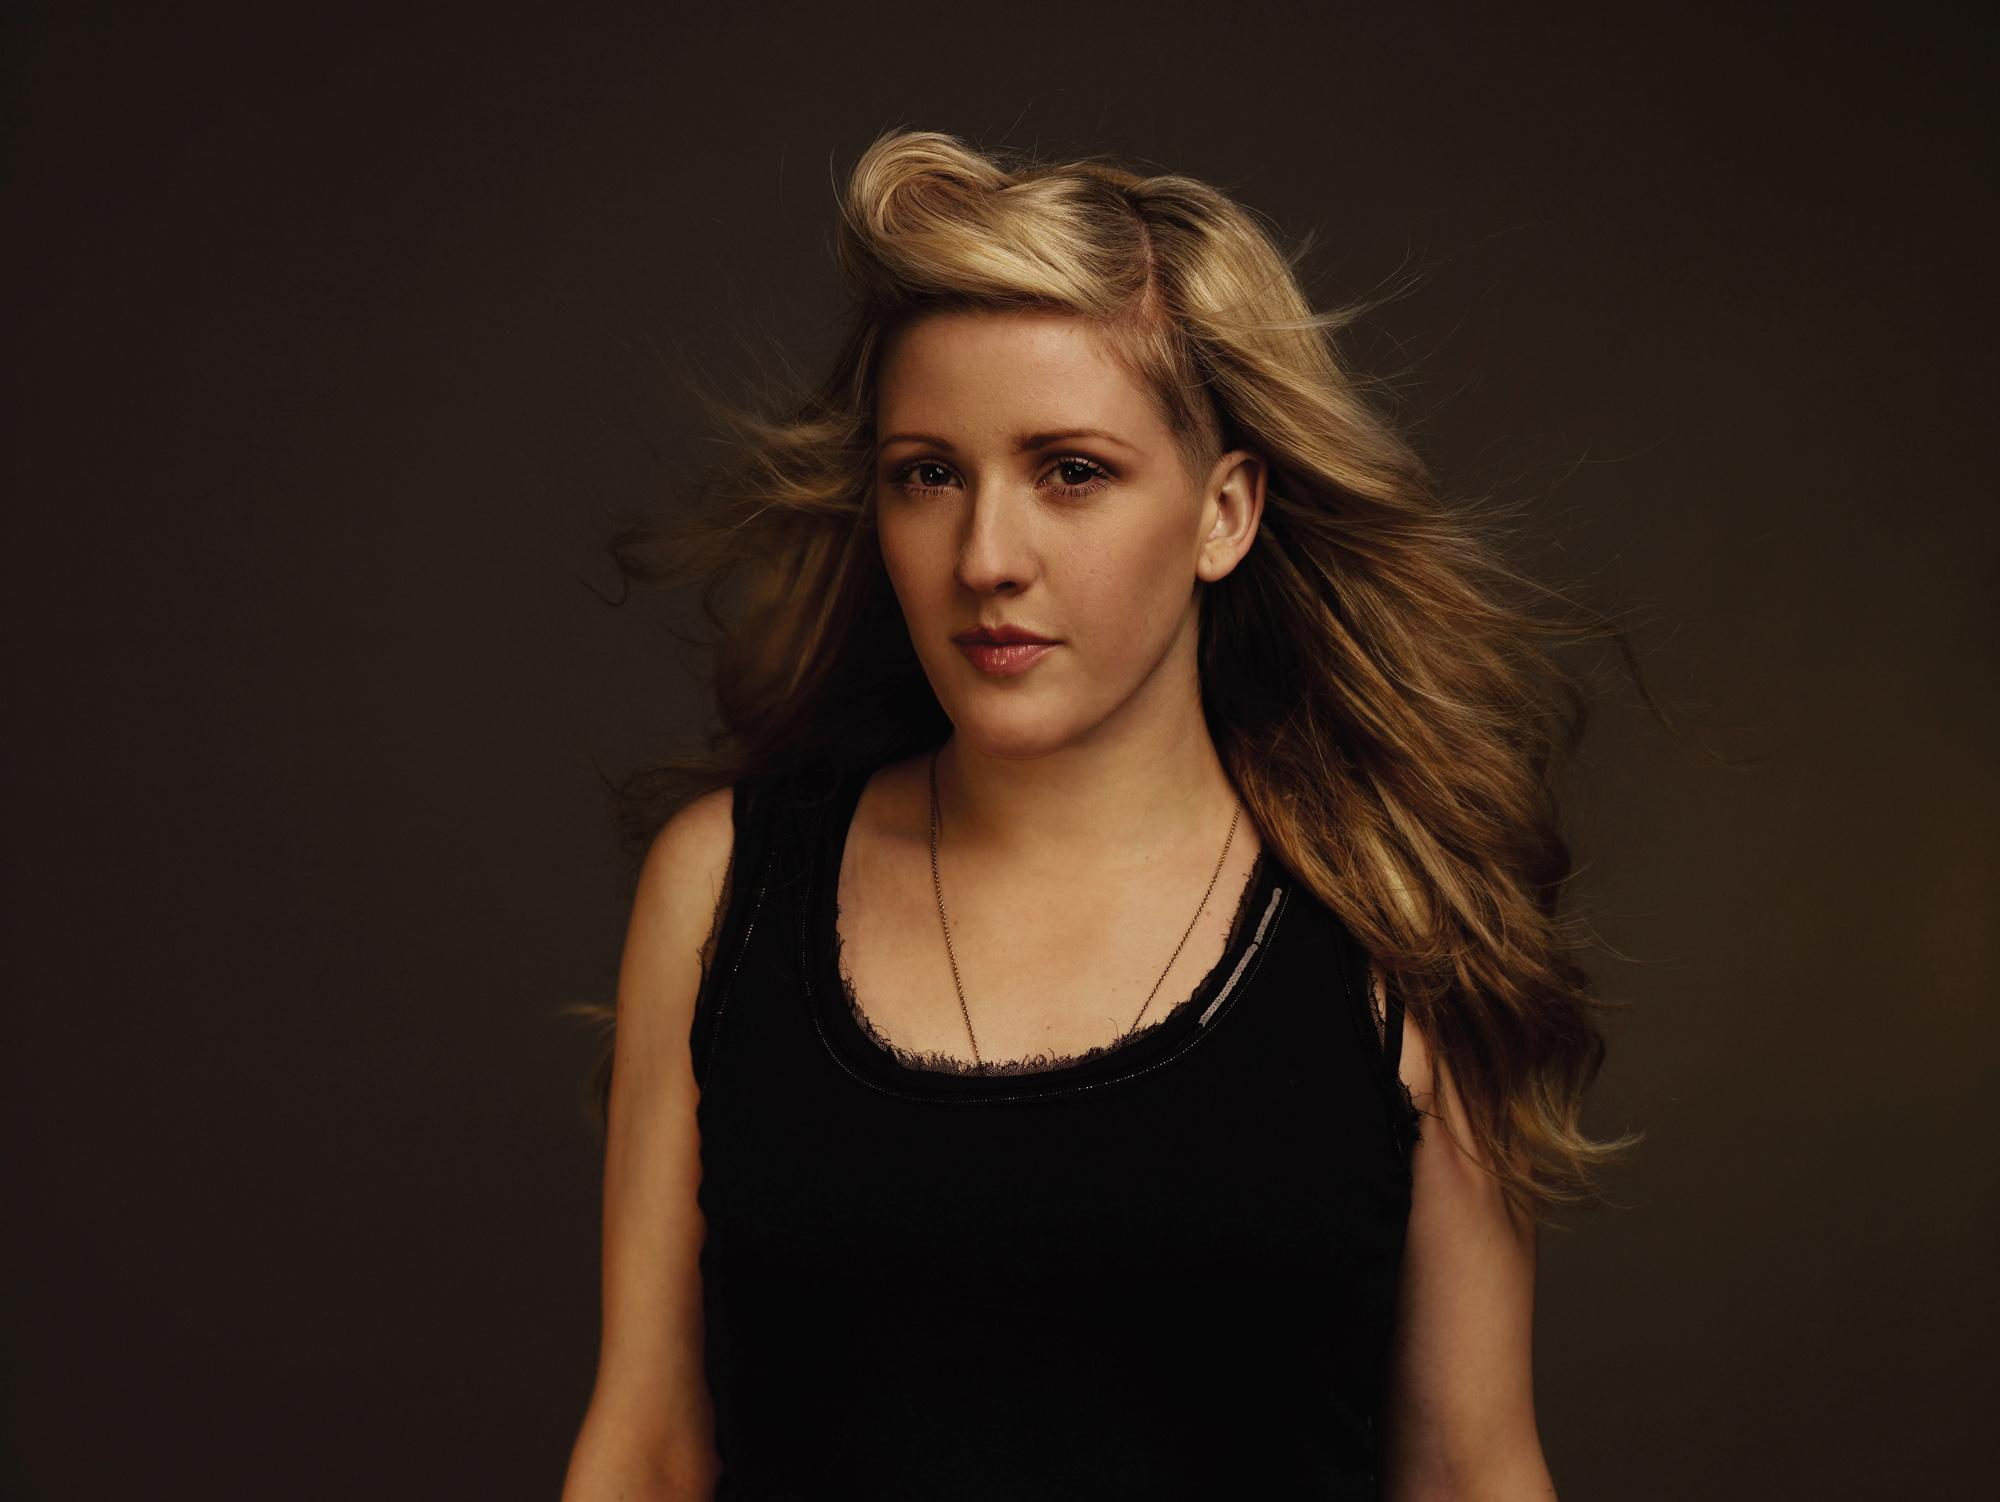 Ellie Goulding Full HD Wallpaper And Background Image